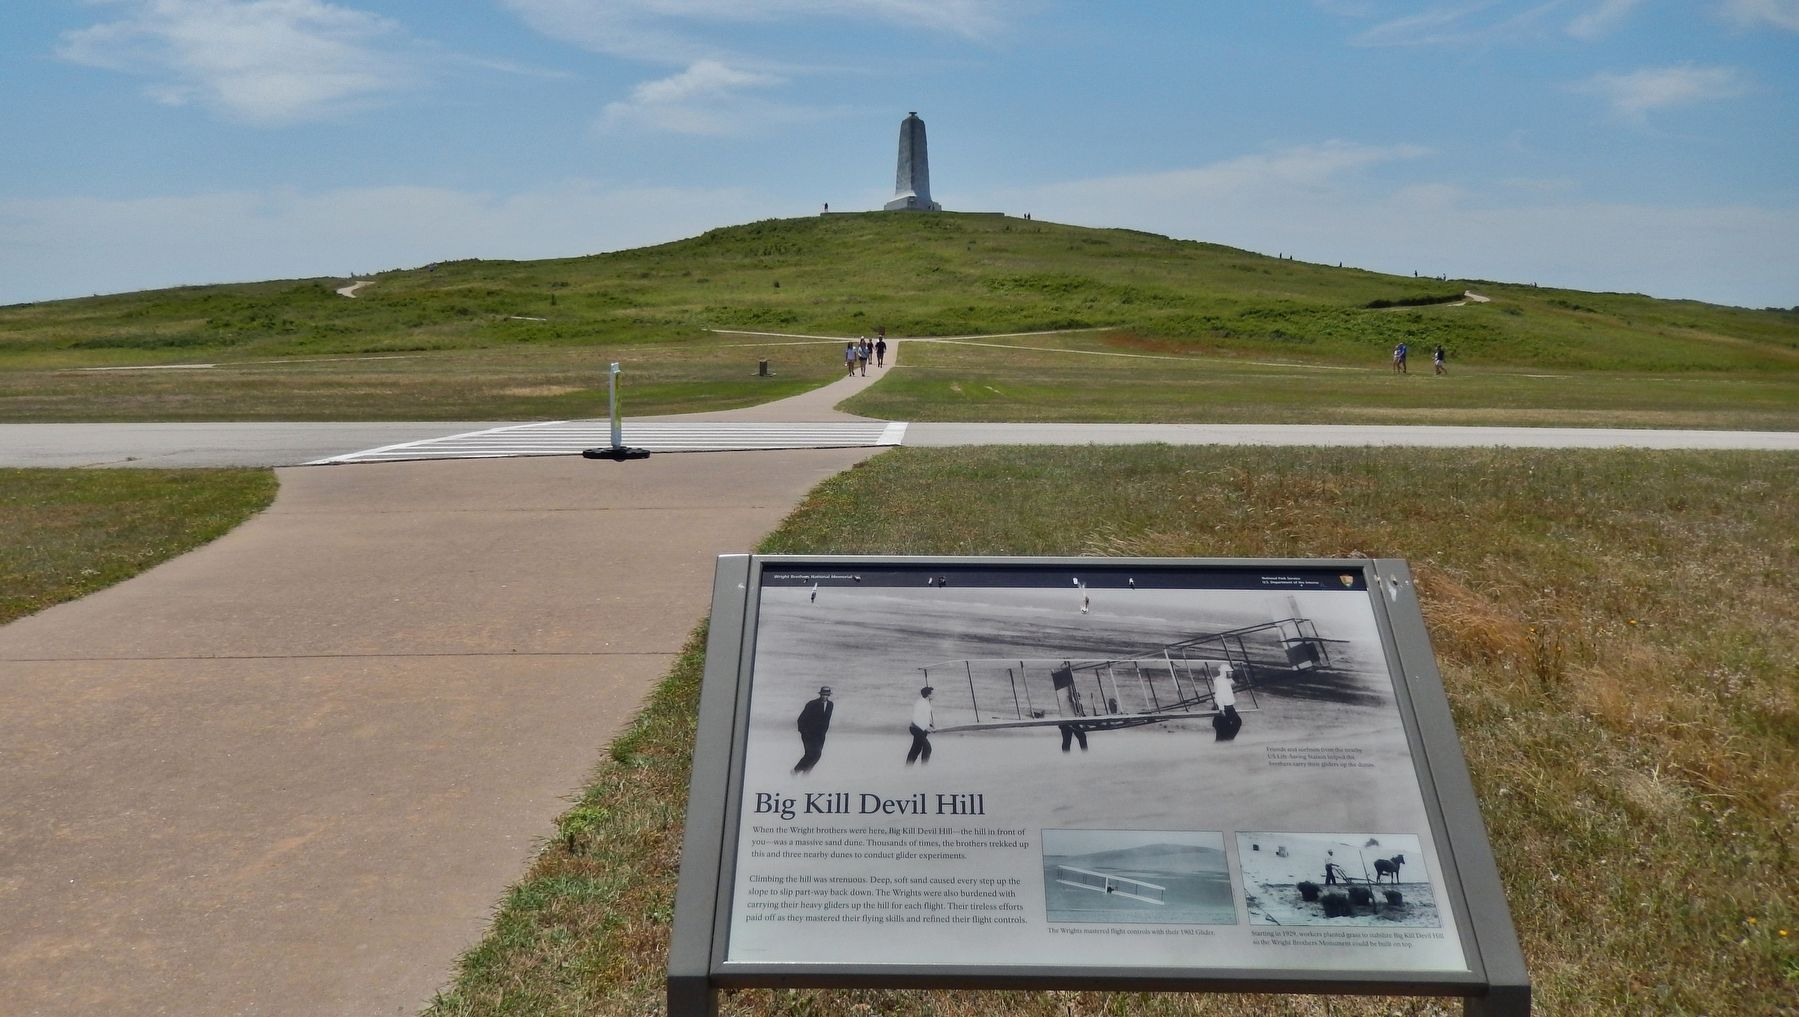 Big Kill Devil Hill Marker (<i>wide view; hill in backround beyond marker</i>) image. Click for full size.